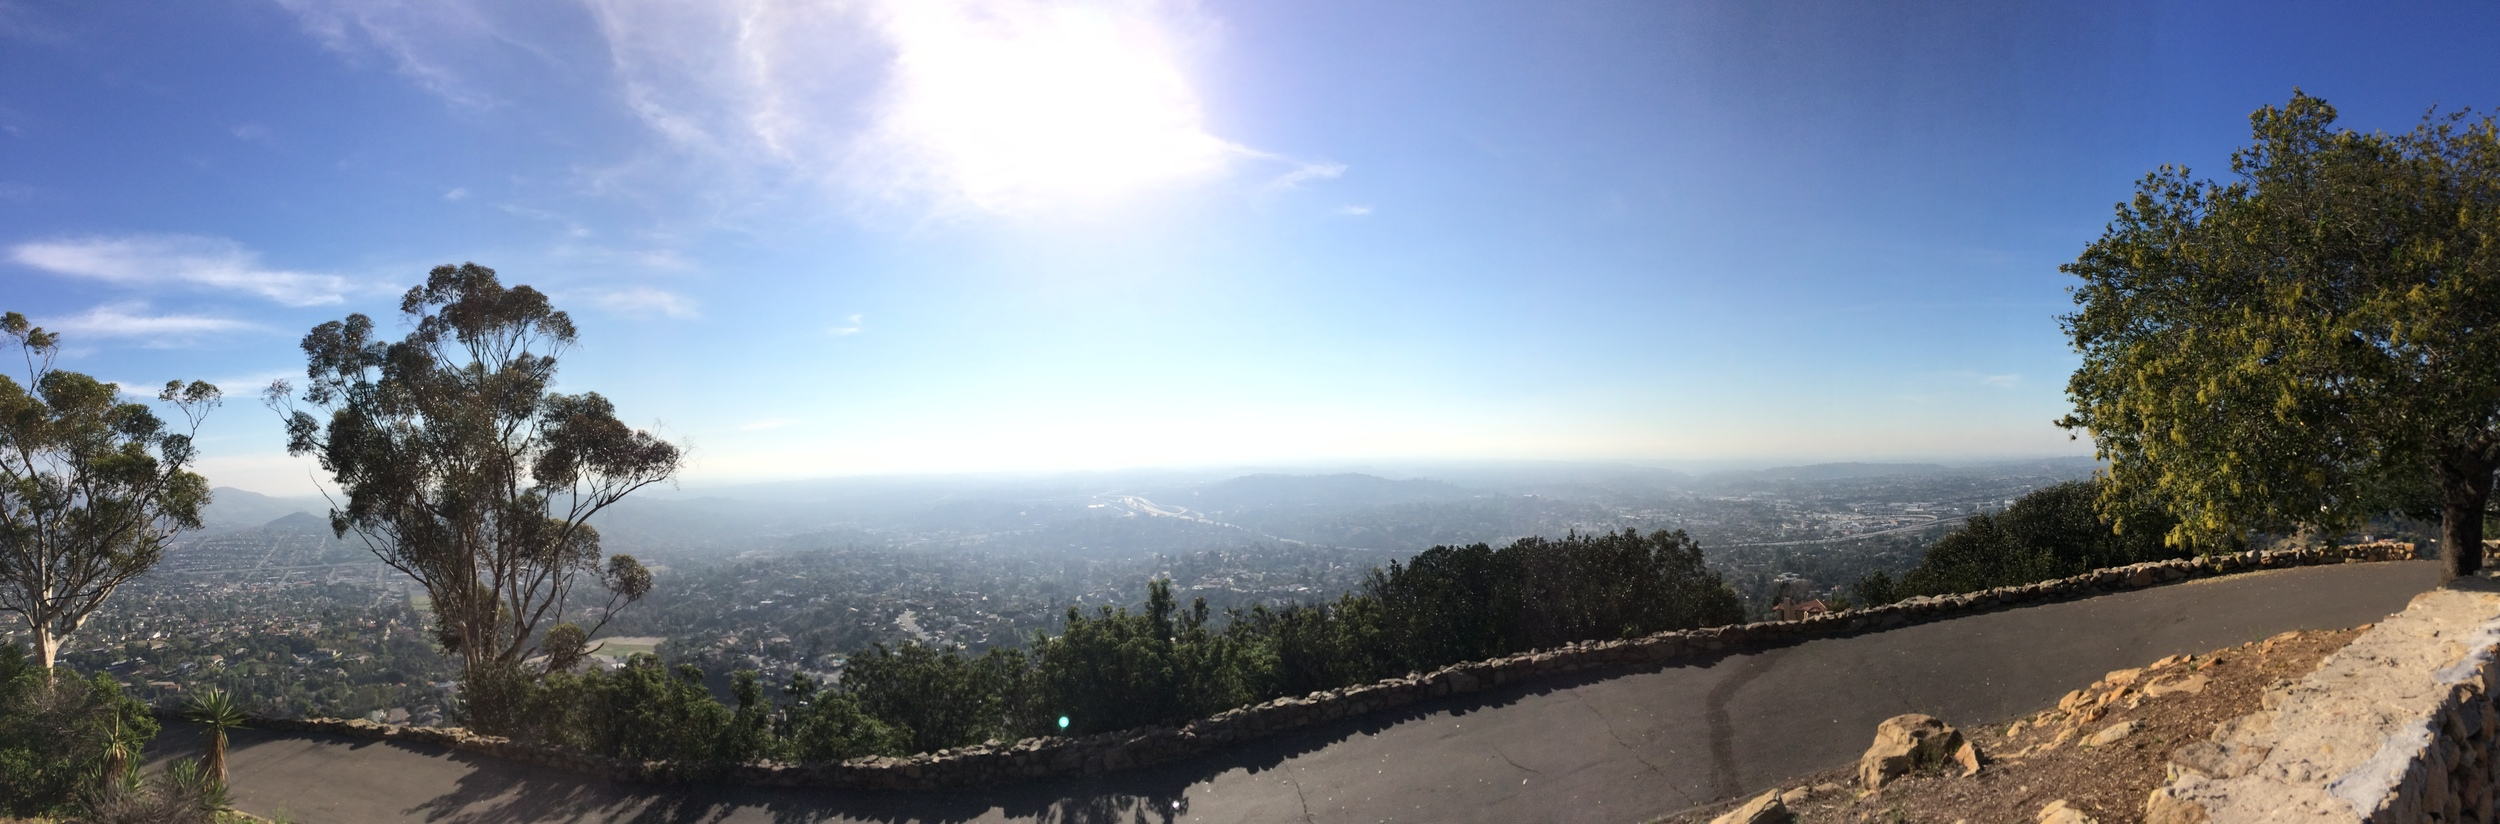 Summit View, Mount Helix February 2015